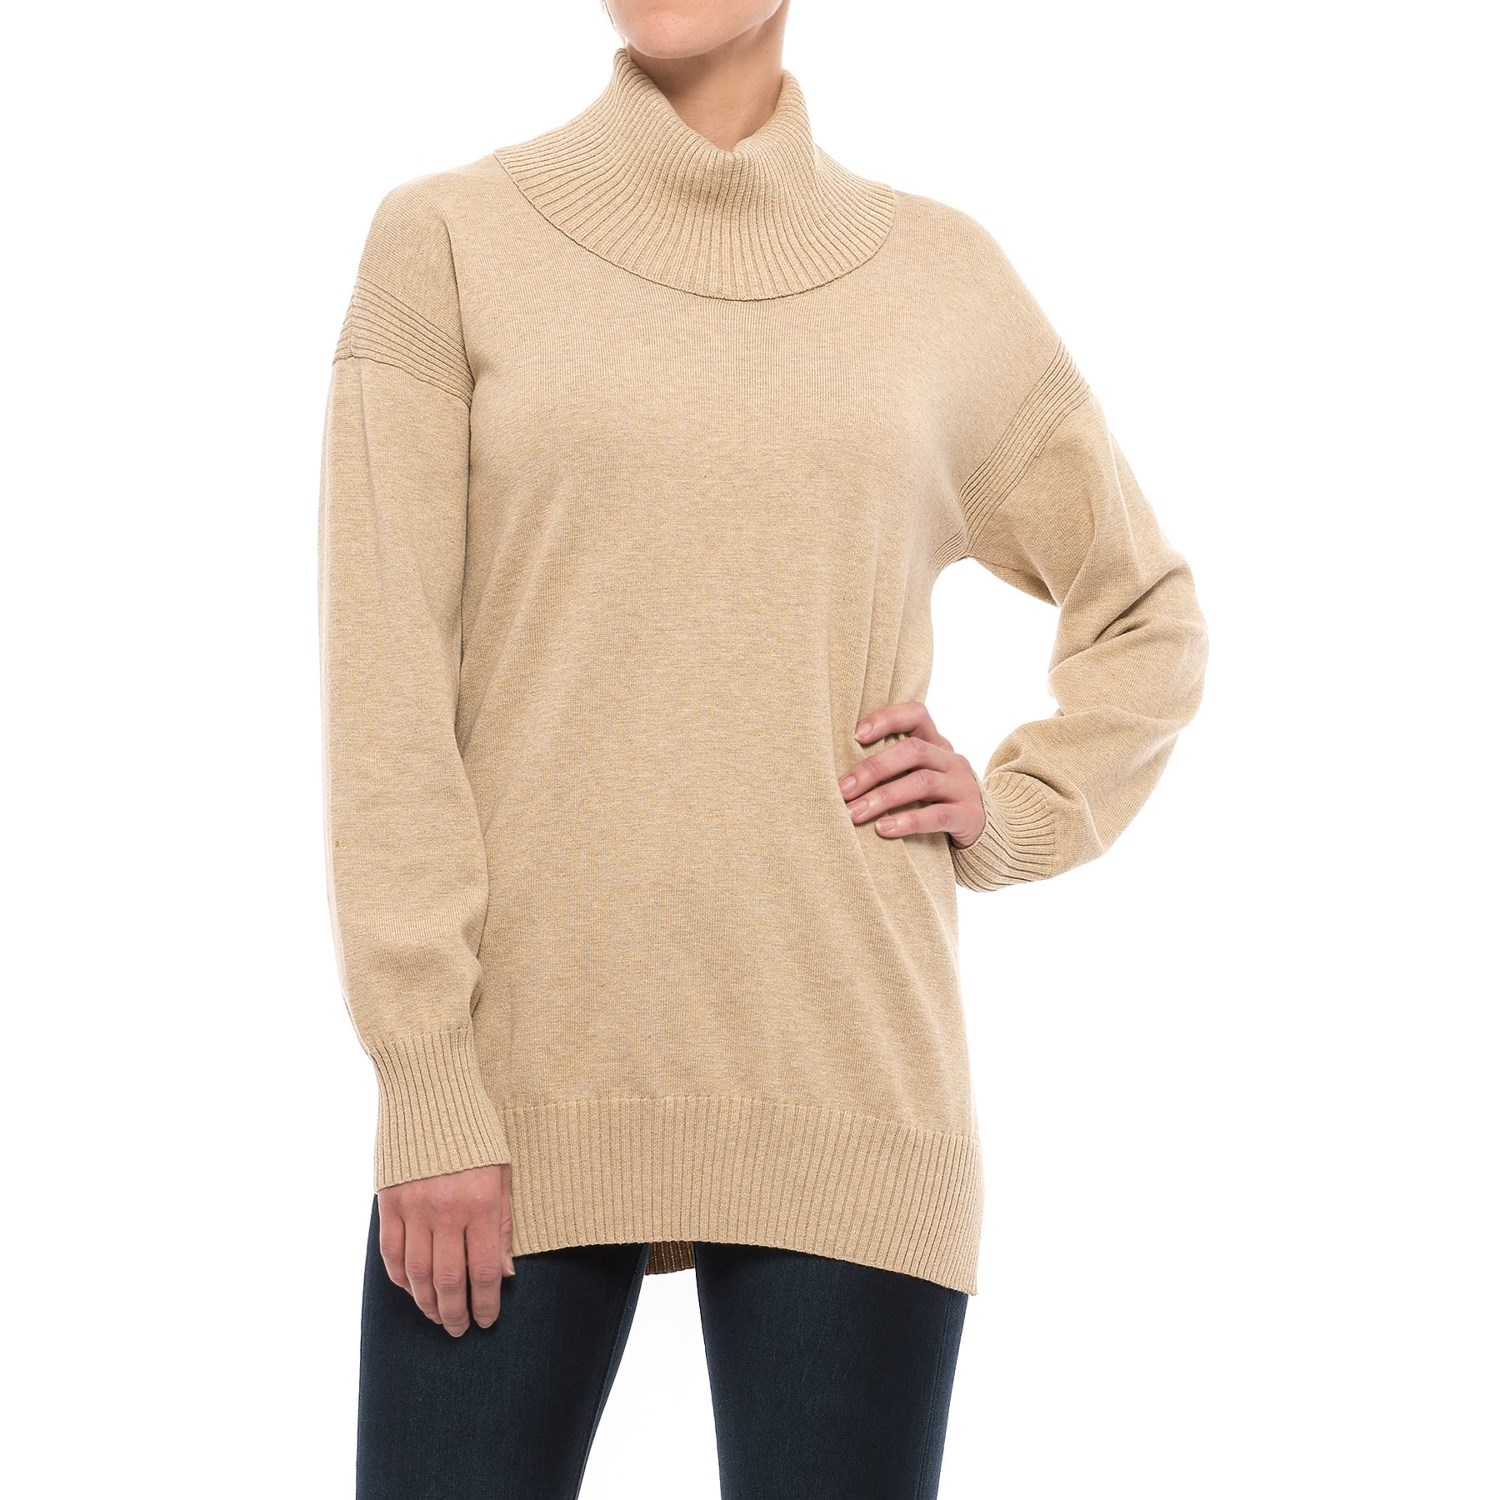 Jeanne Pierre Fine Gauge Sweater (For Women) - Save 62%